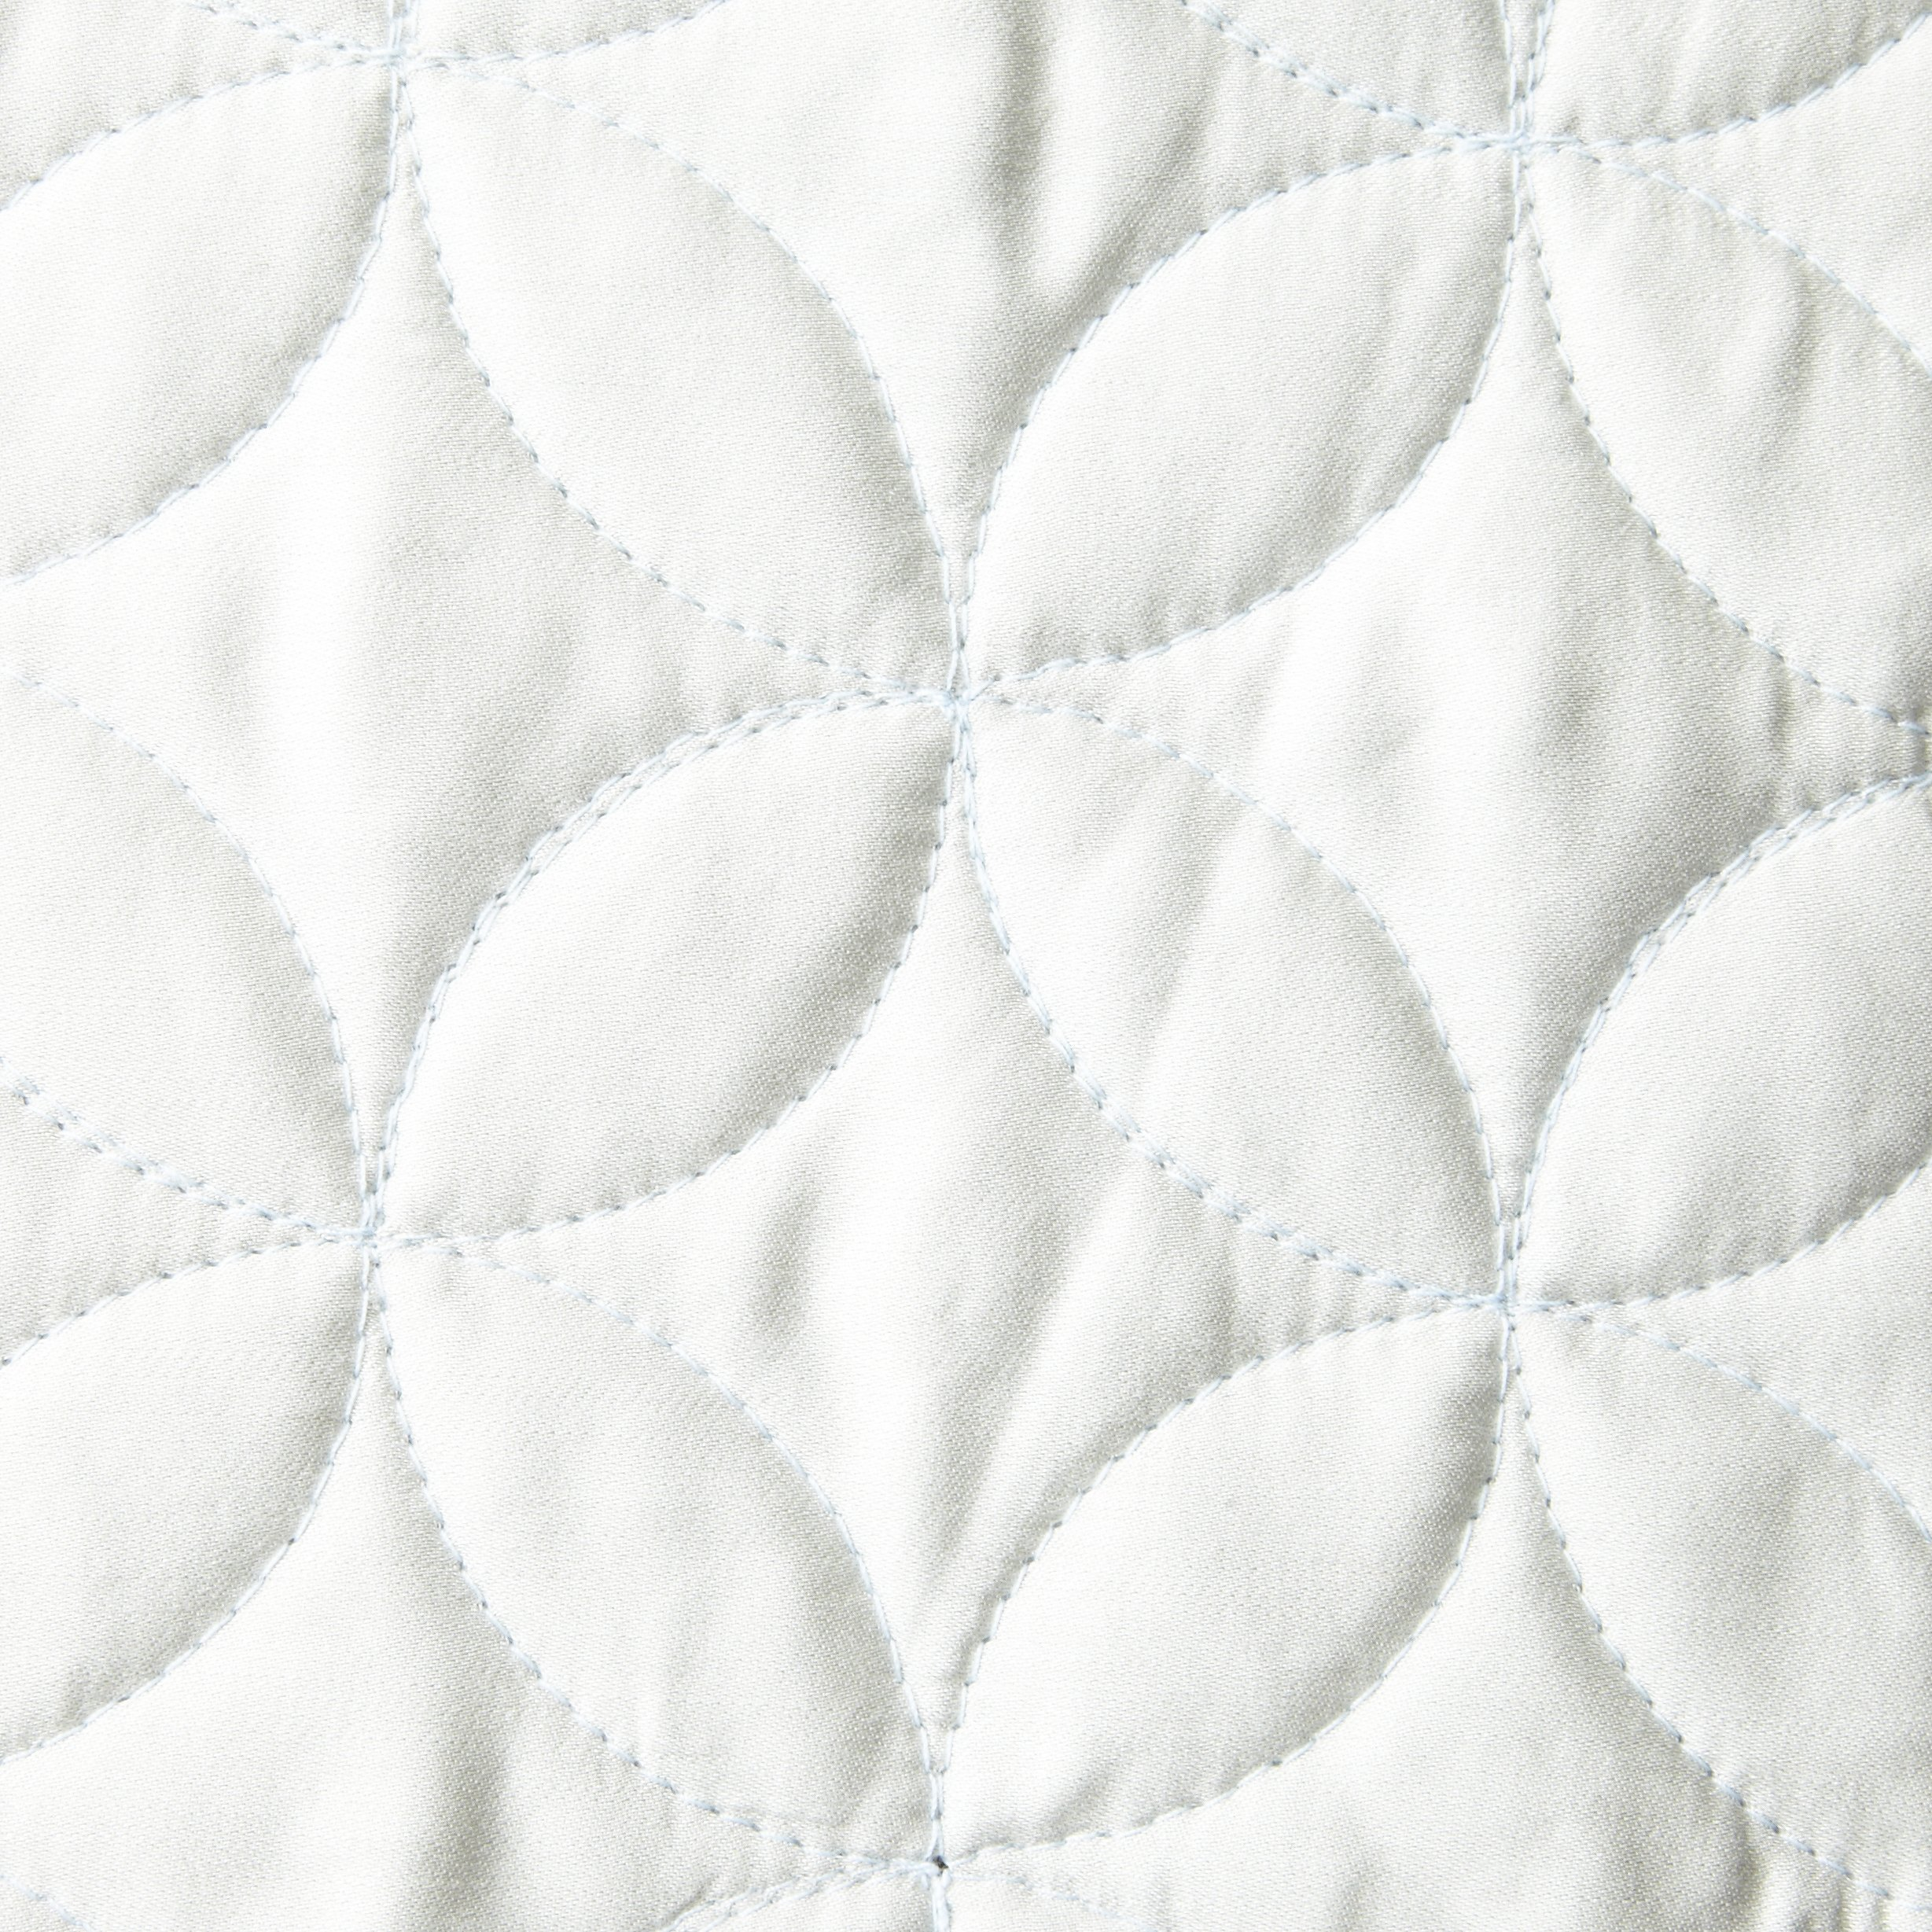 Tuscany Fine Linens Livorno Beechwood Modal Quilted Coverlet Set, Seafoam, Queen Oversized by Tuscany Fine Linens (Image #2)